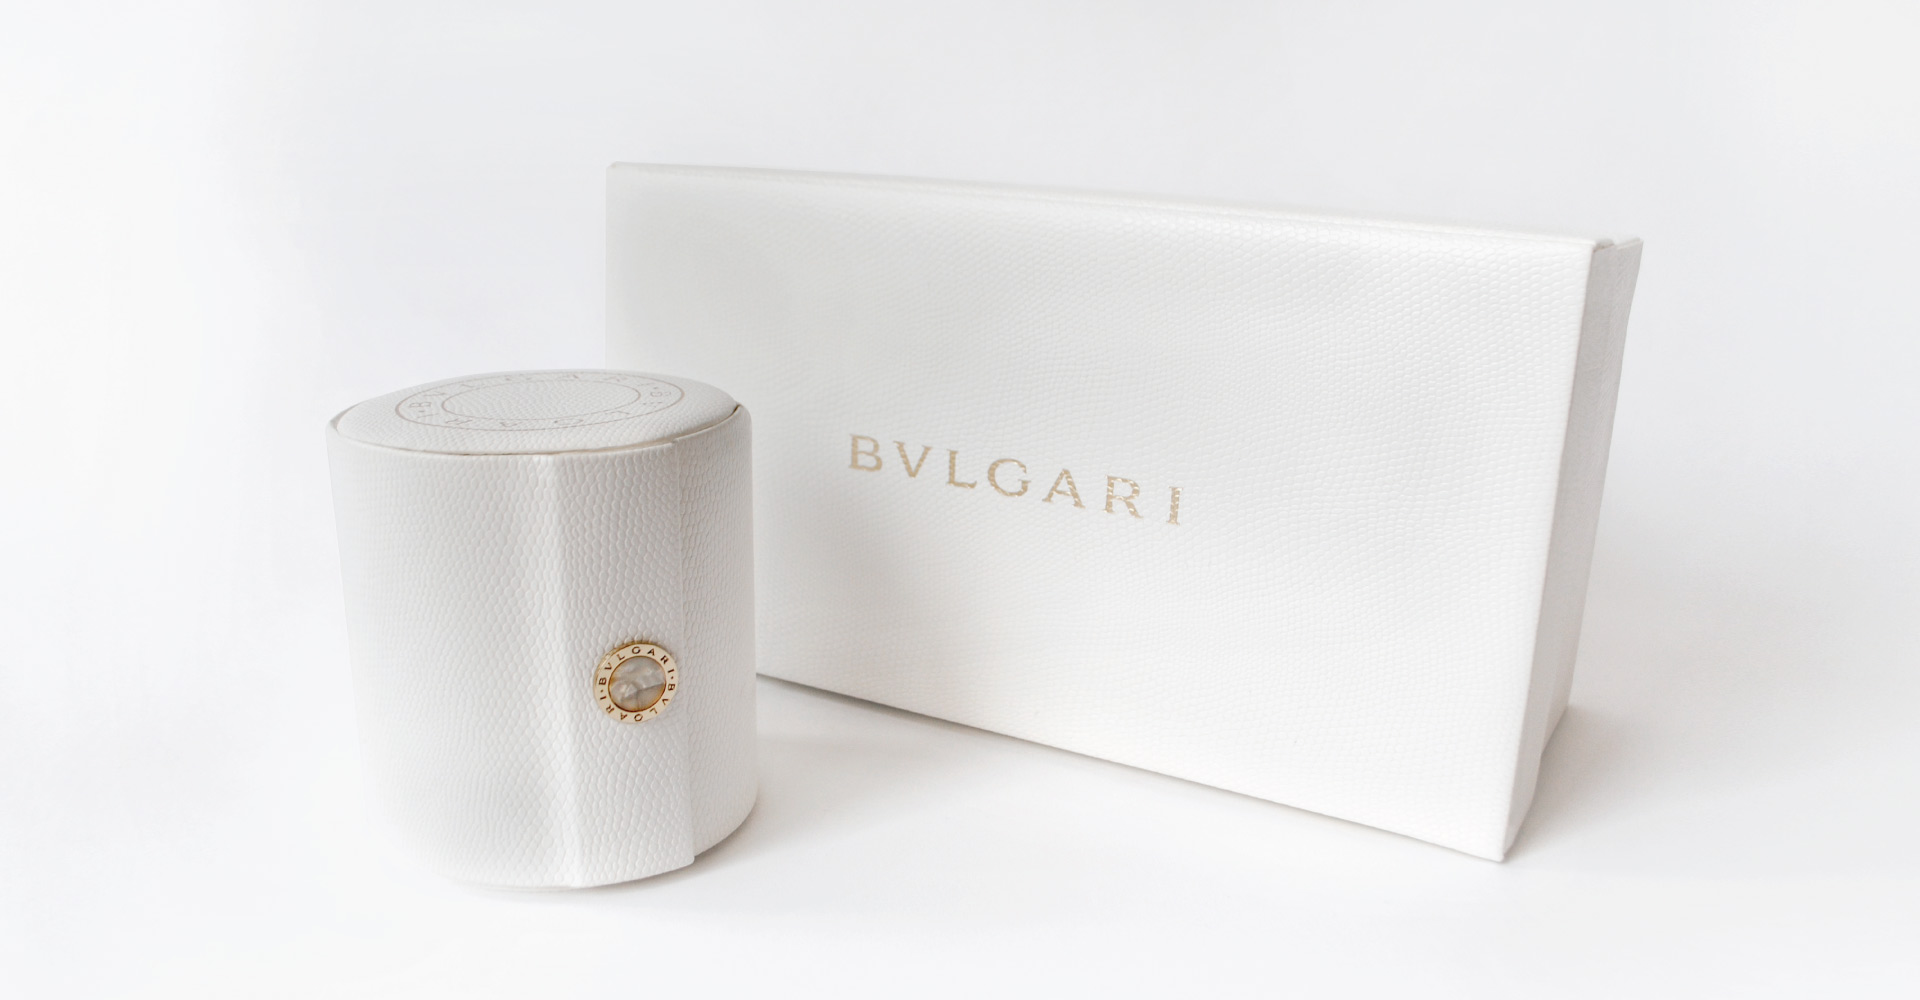 BVLGARI Gift-with-Purchase Packaging